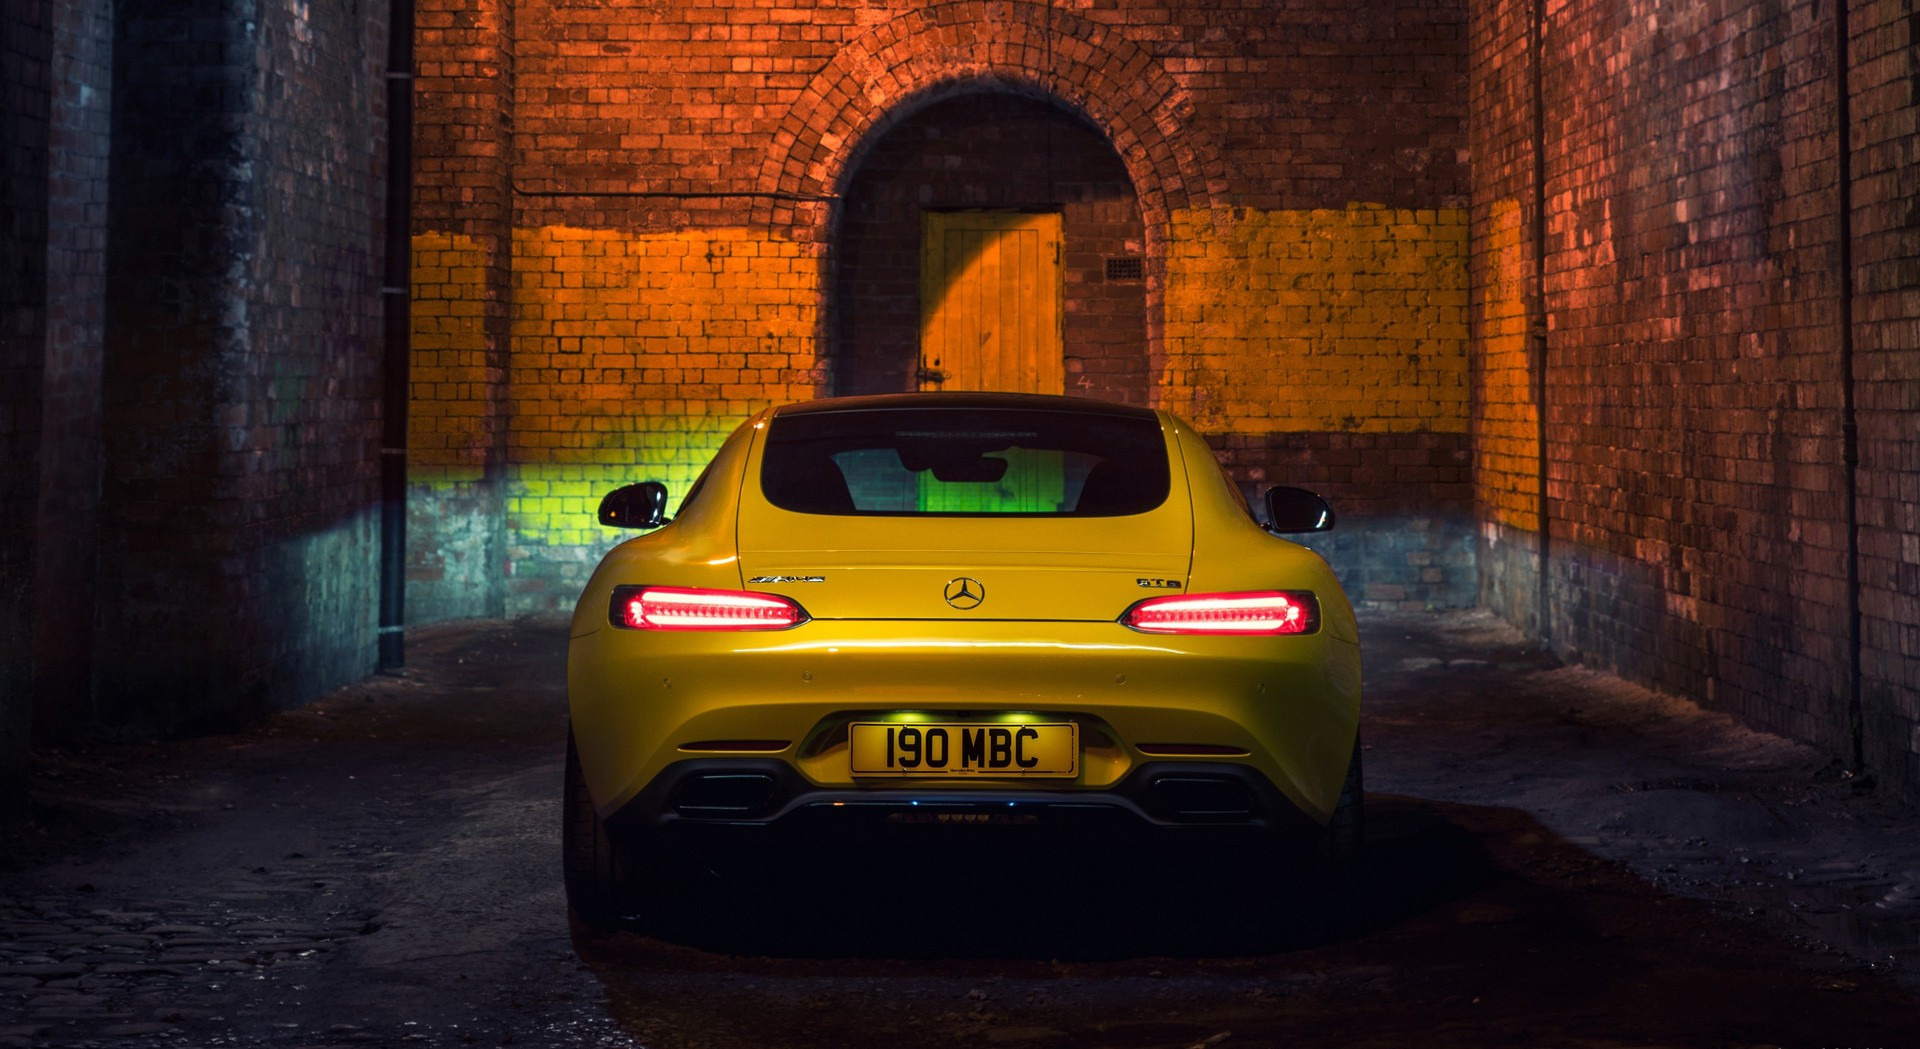 Mercedes benz amg gt us hd desktop wallpapers 4k hd for Mercedes benz of music city